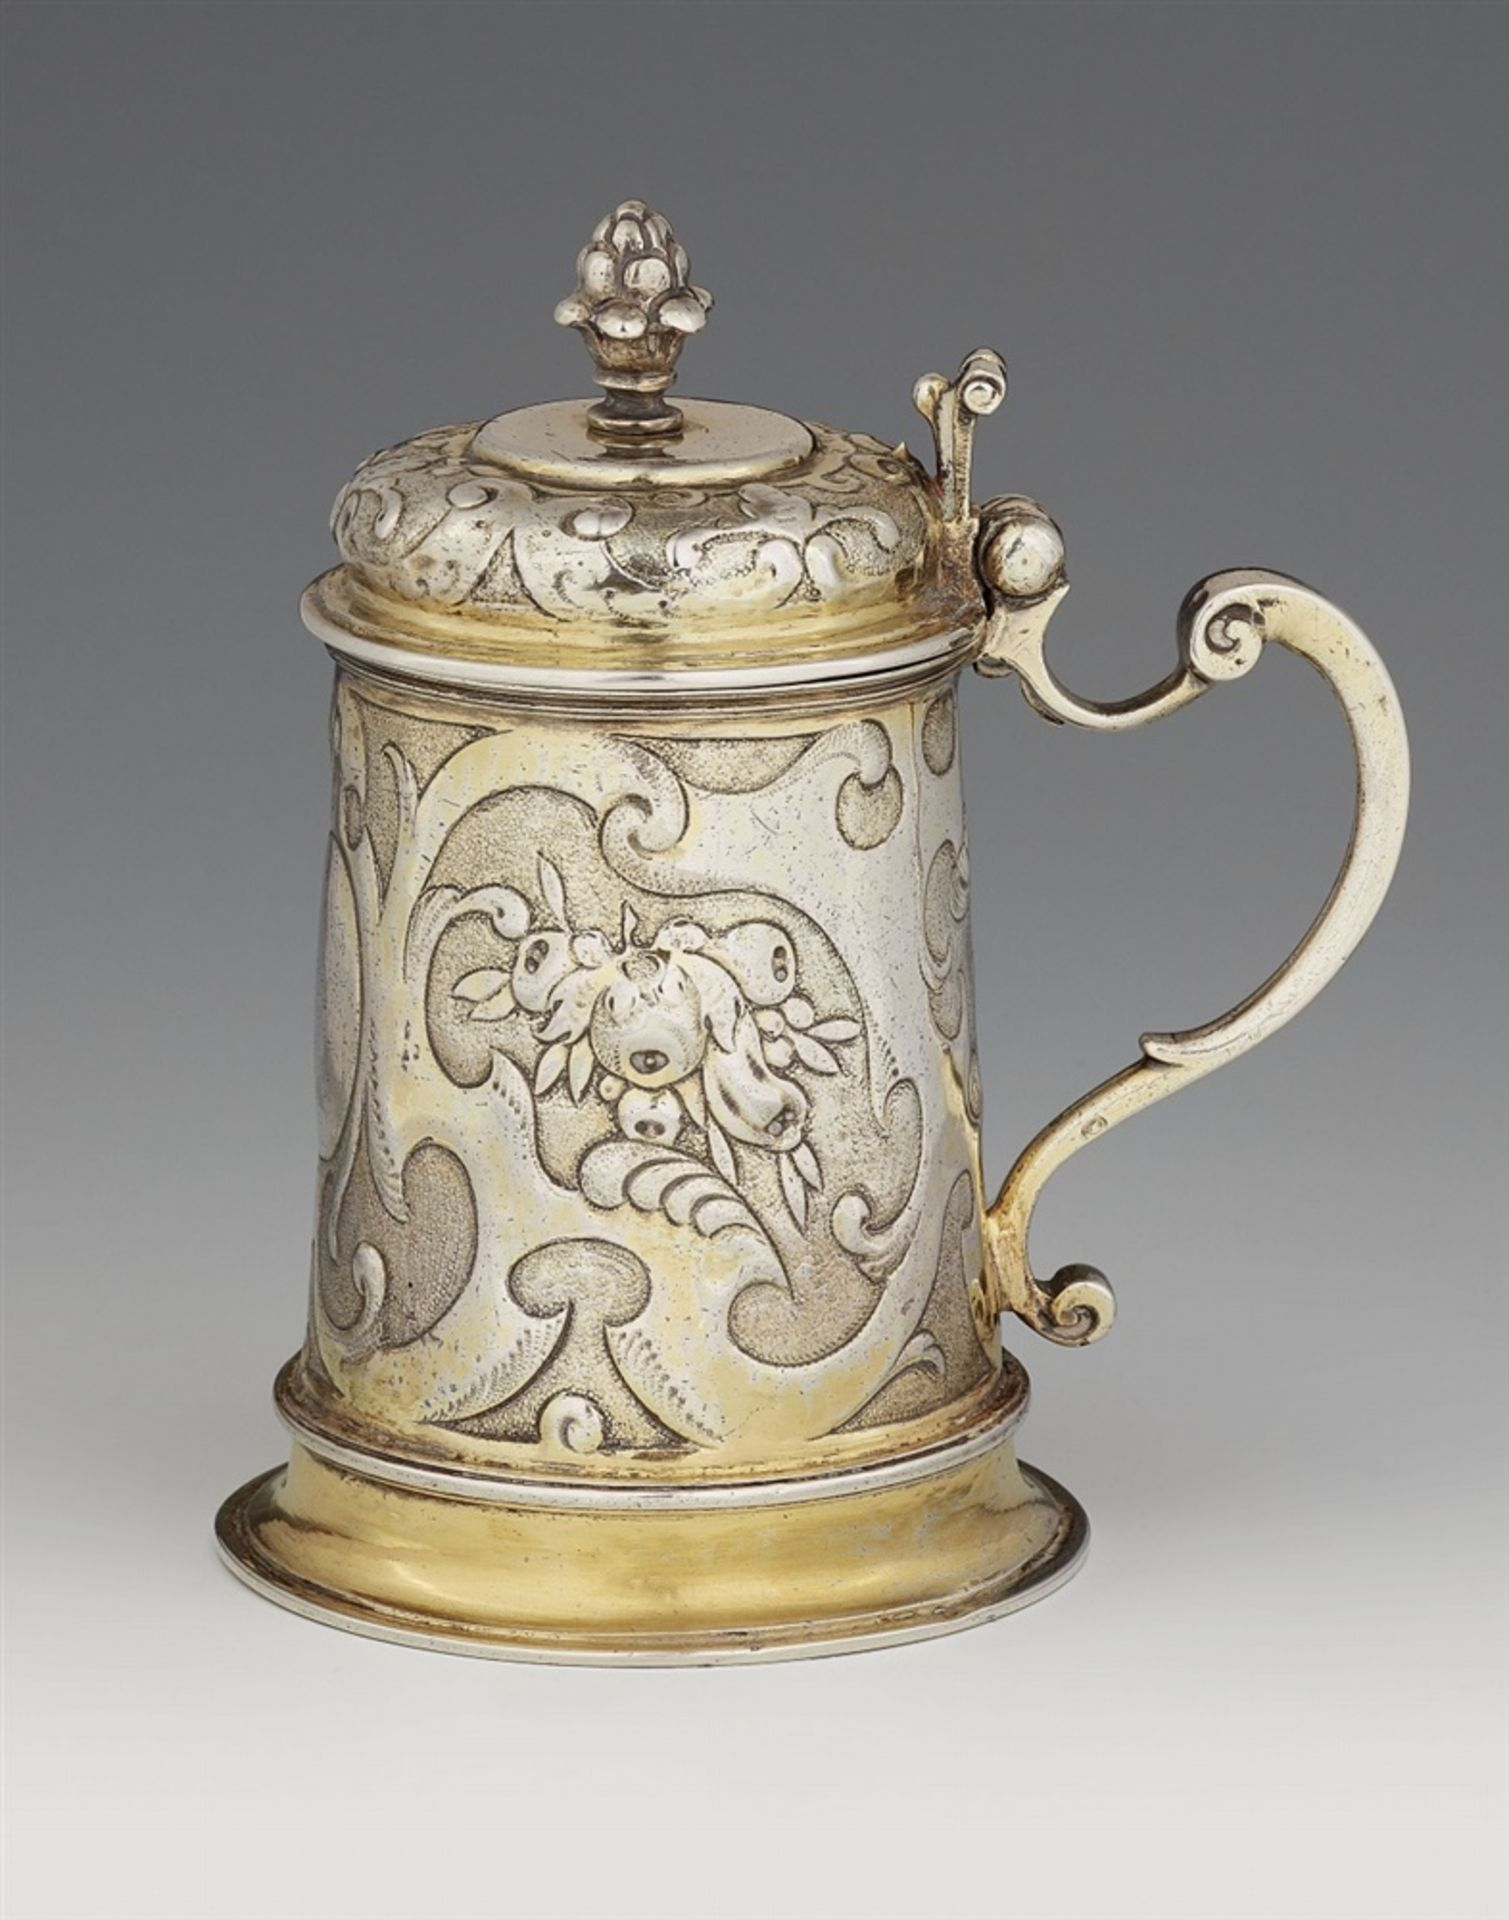 Los 722 - A small Augsburg silver tankardSilver; gold-plated. A silver-gilt tankard of tapering cylindrical